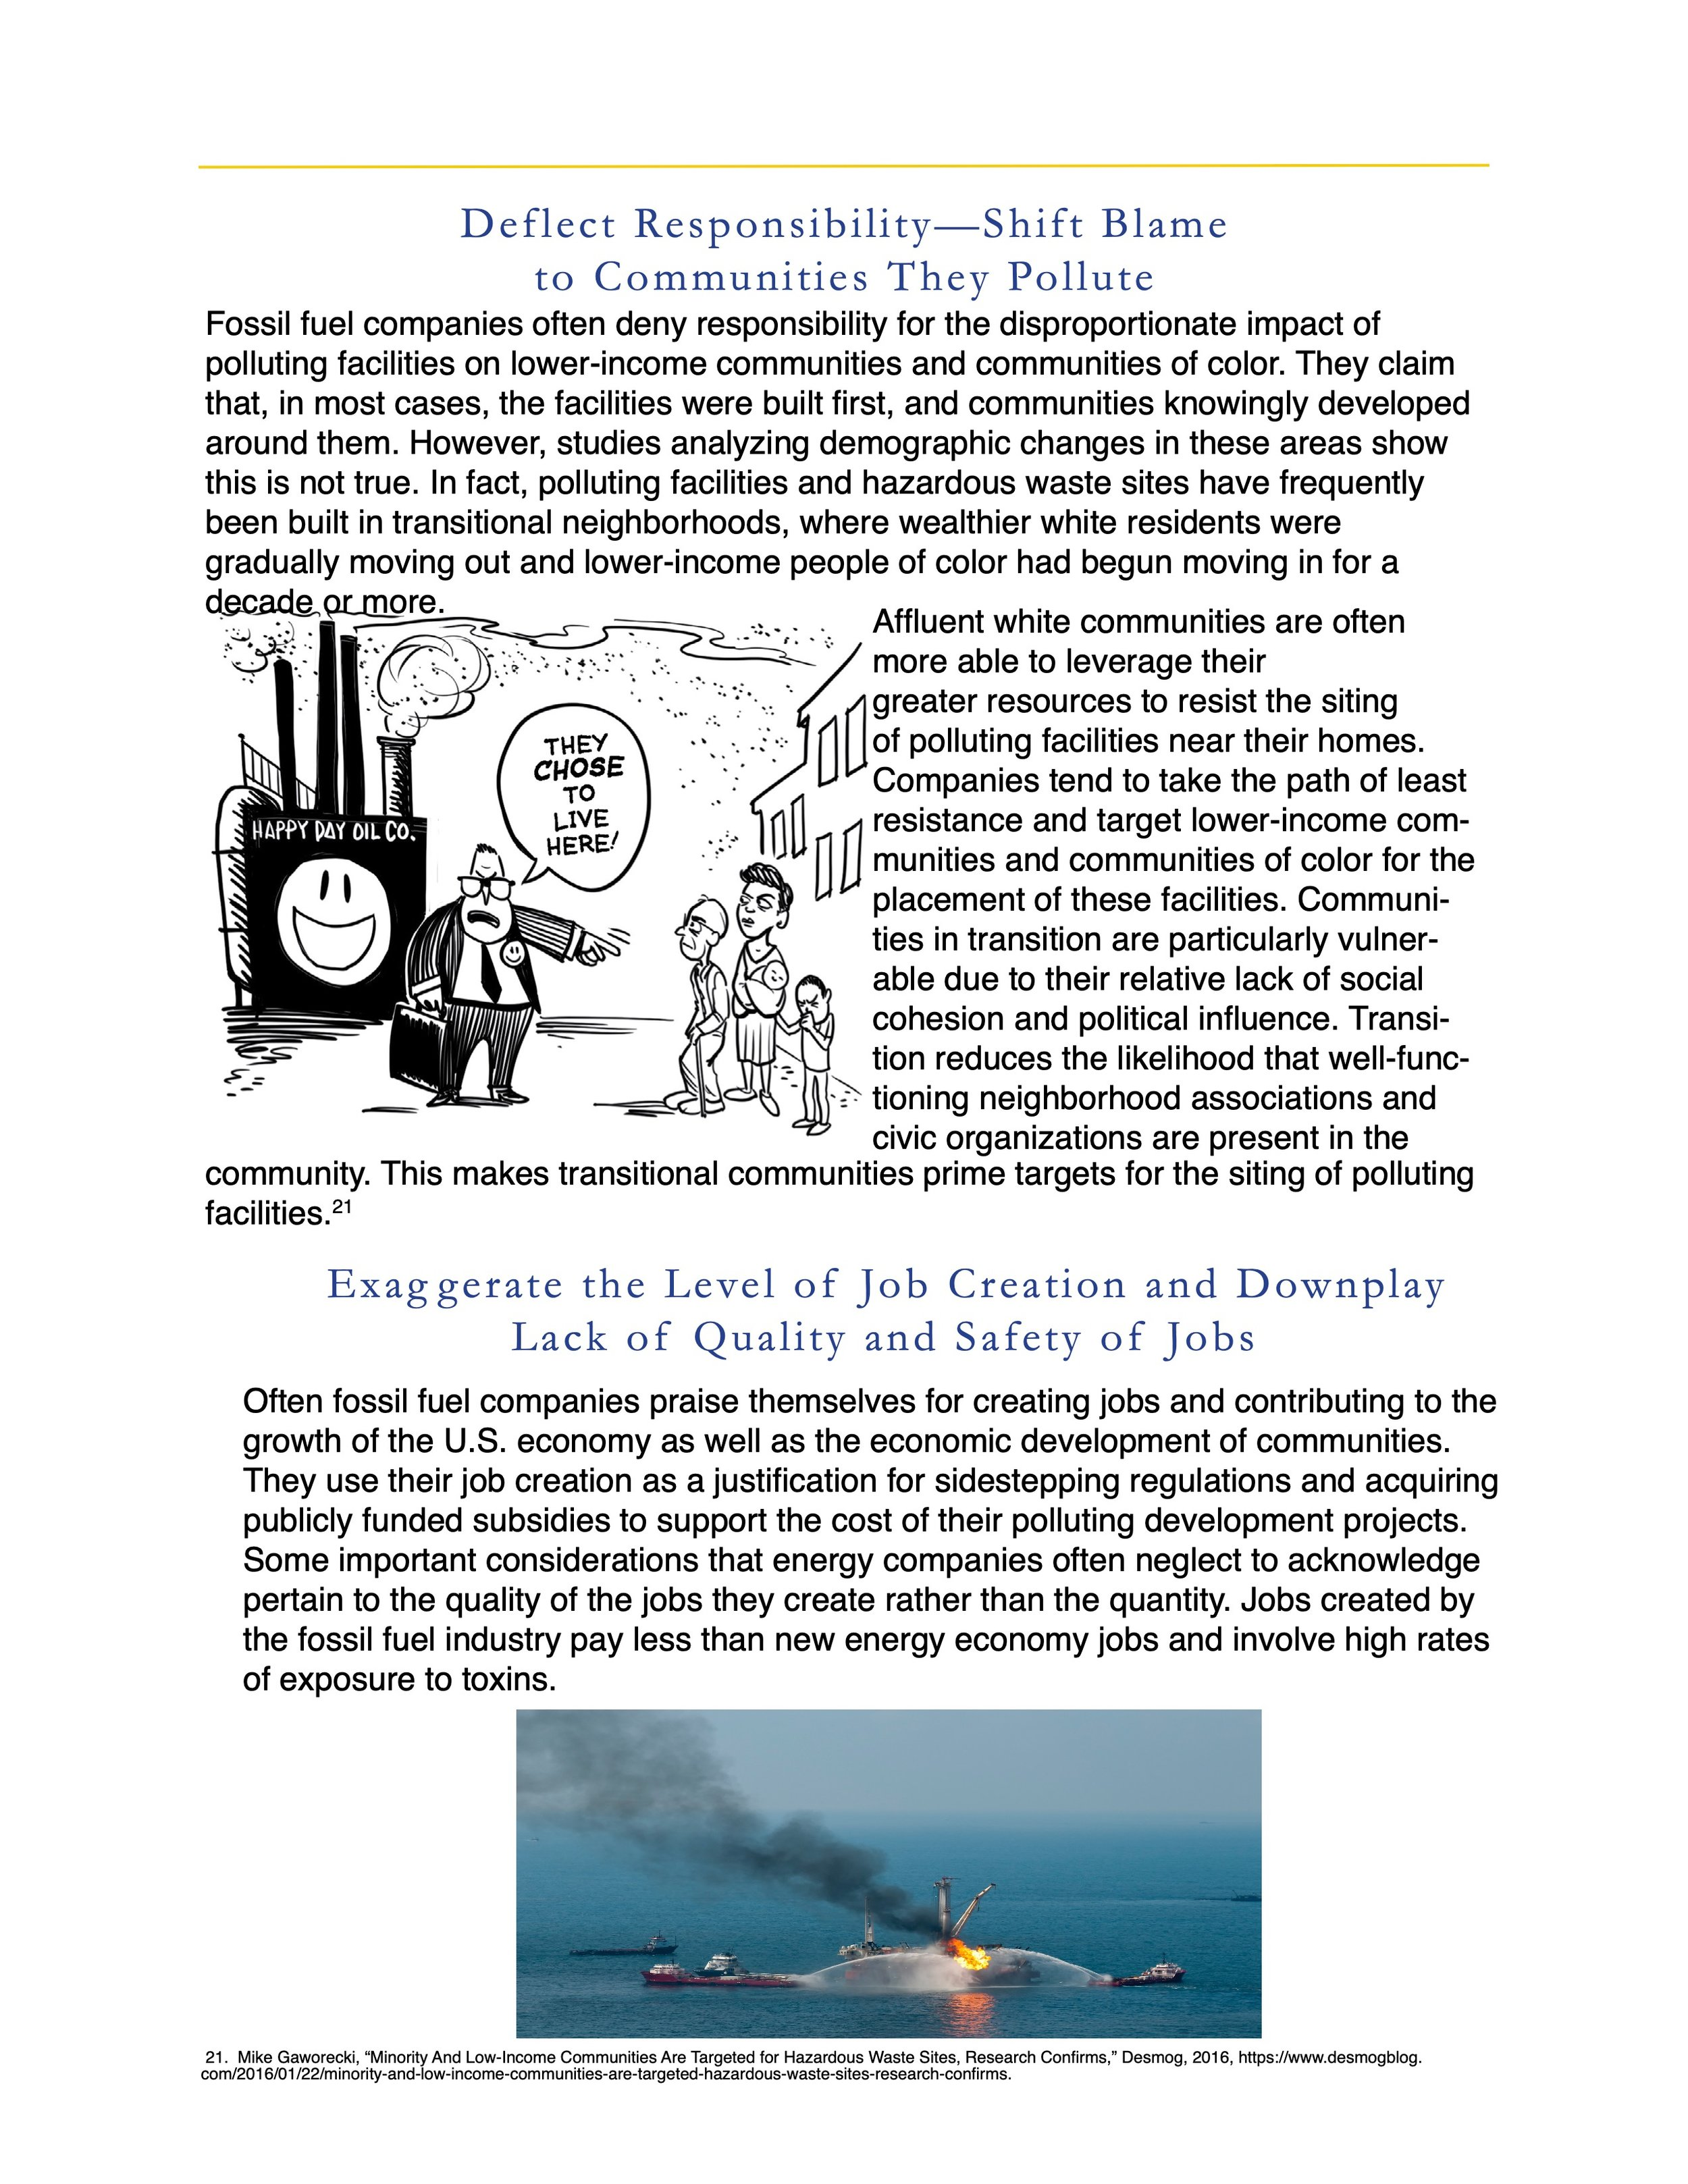 Fossil-Fueled-Foolery-An-Illustrated-Primer-on-the-Top-10-Manipulation-Tactics-of-the-Fossil-Fuel-Industry 10.jpeg